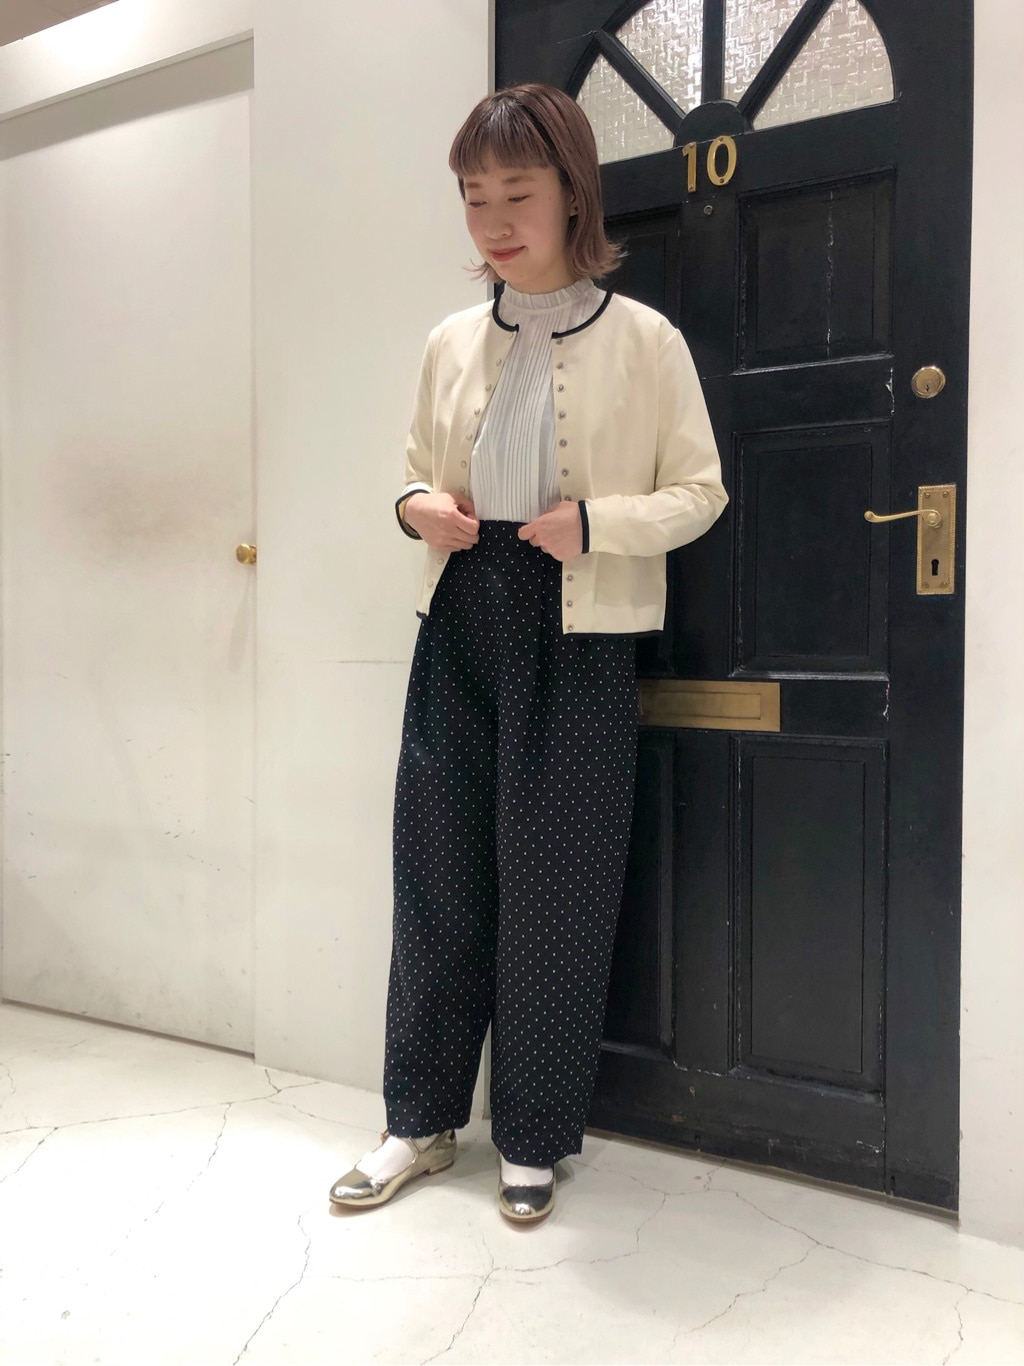 Dot and Stripes CHILD WOMAN ルクアイーレ 身長:157cm 2021.02.05